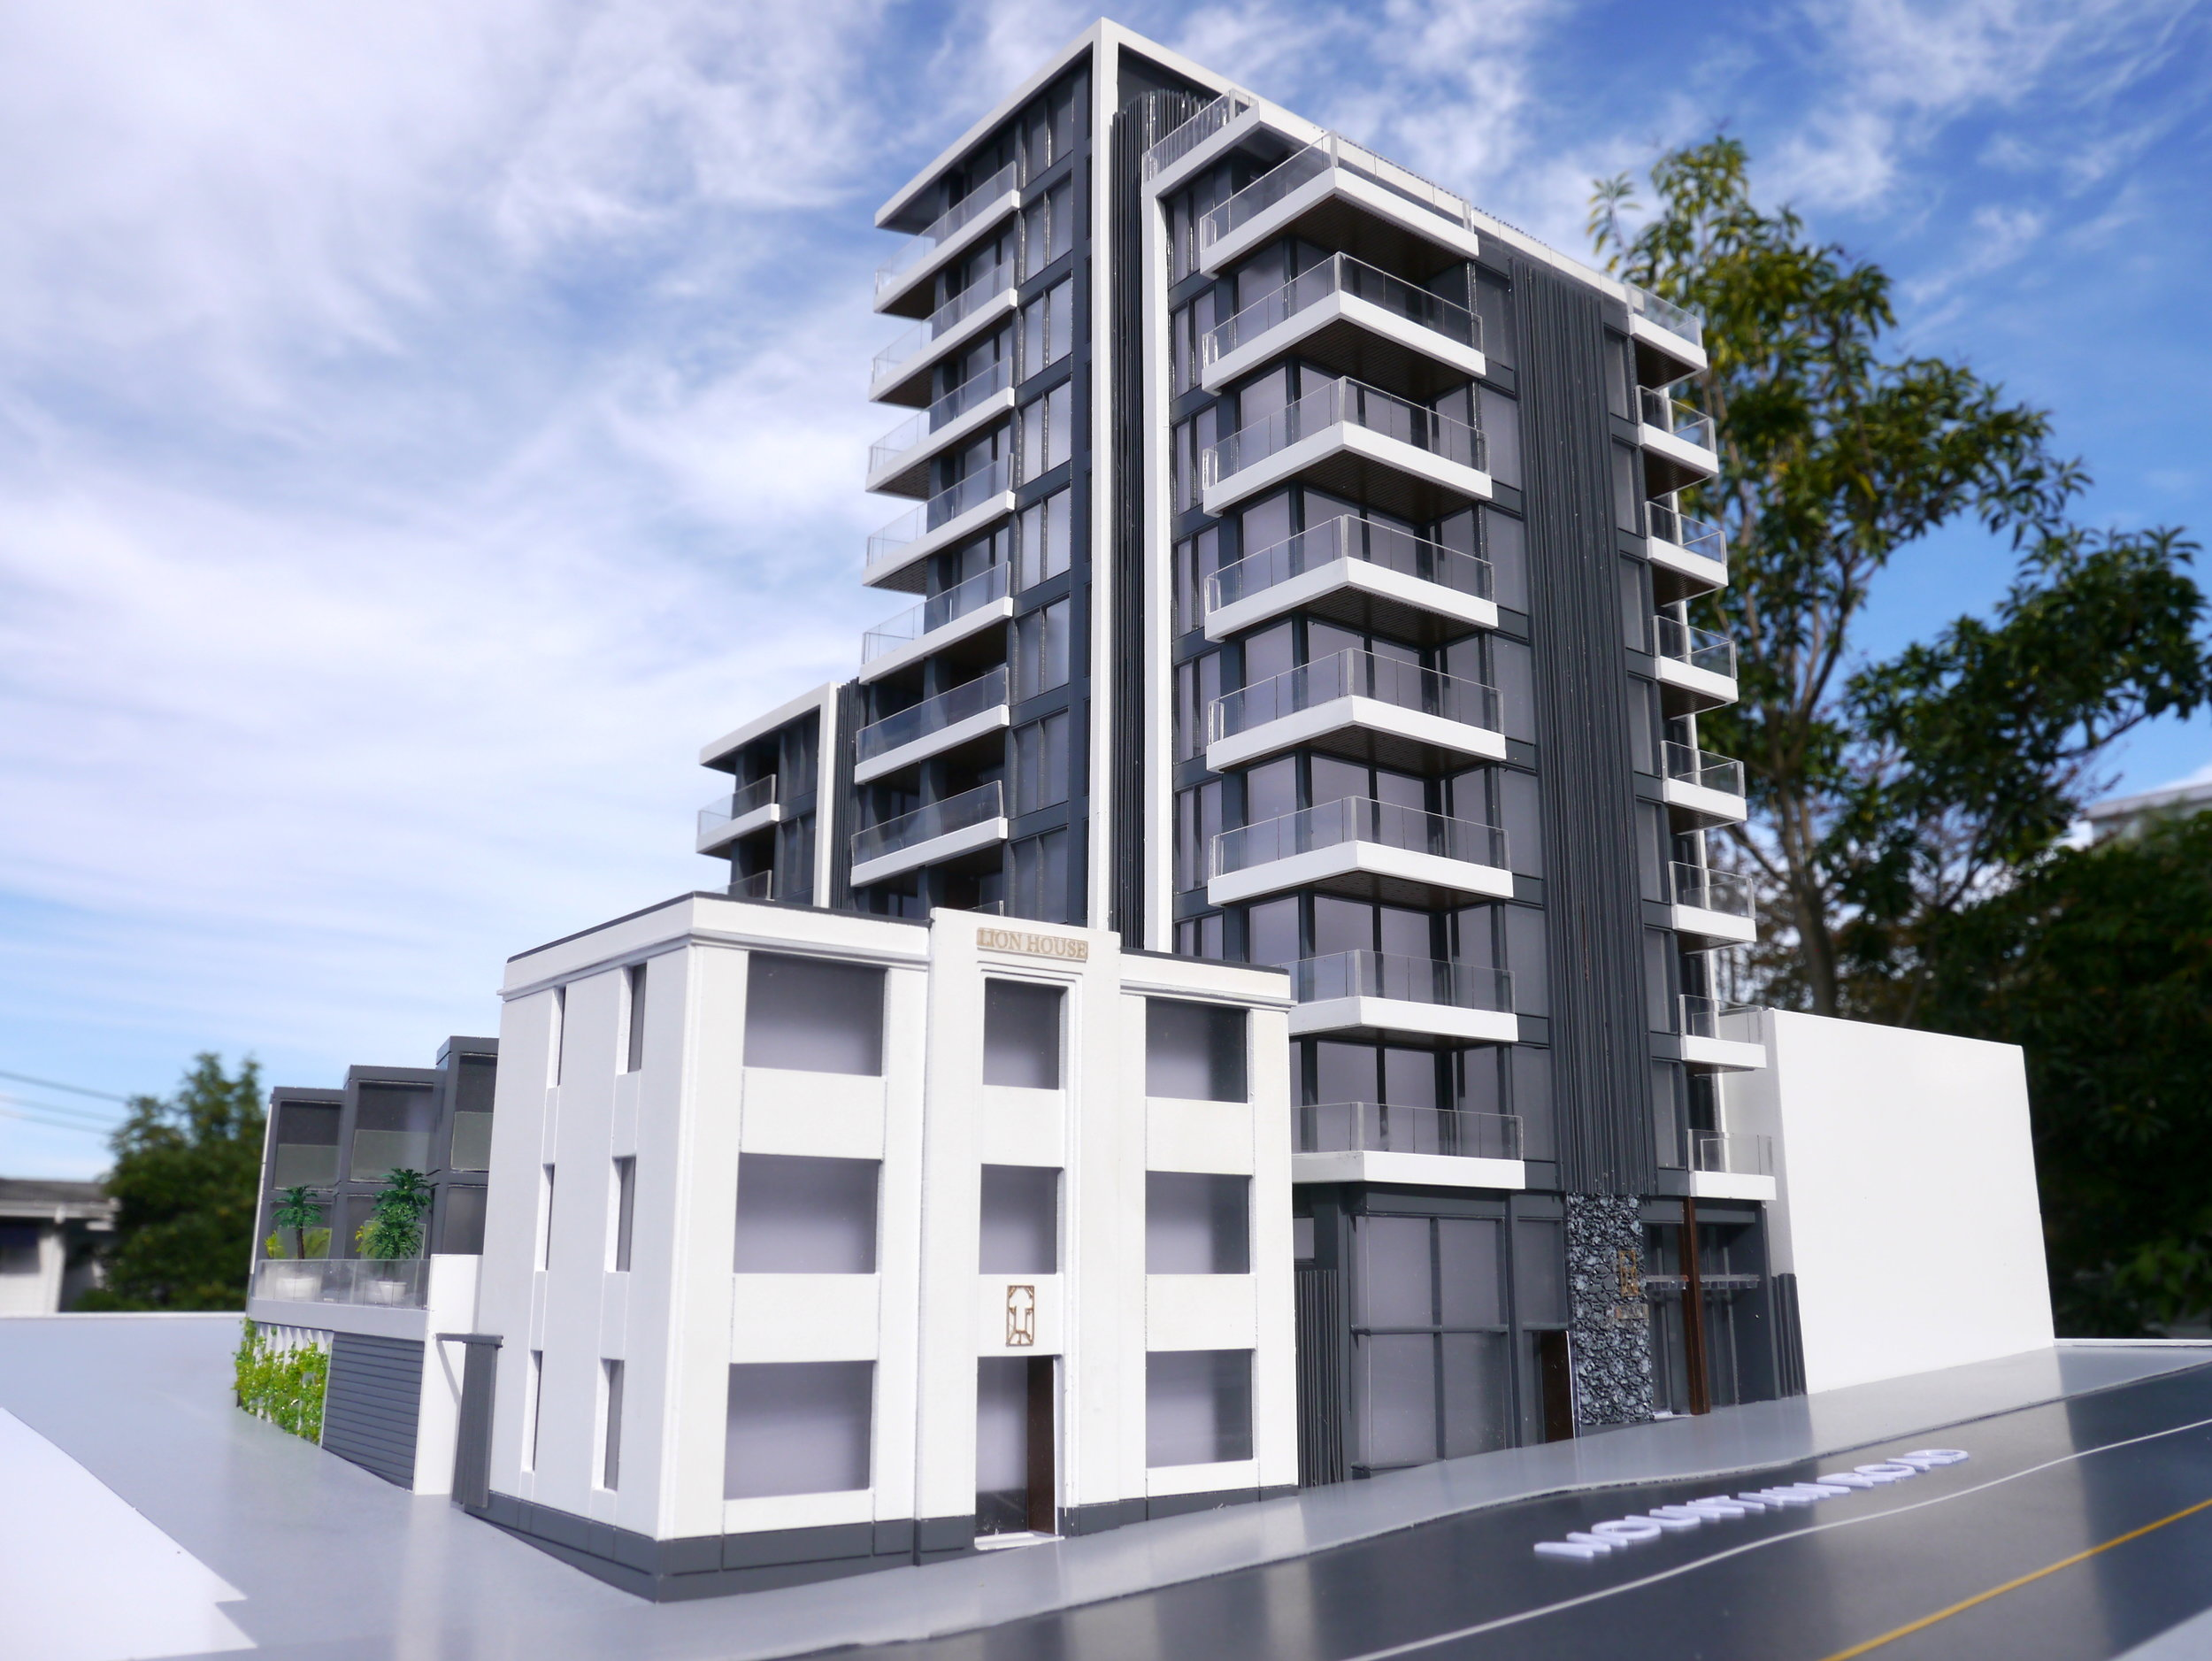 Lion Residences Architectural Scale Model